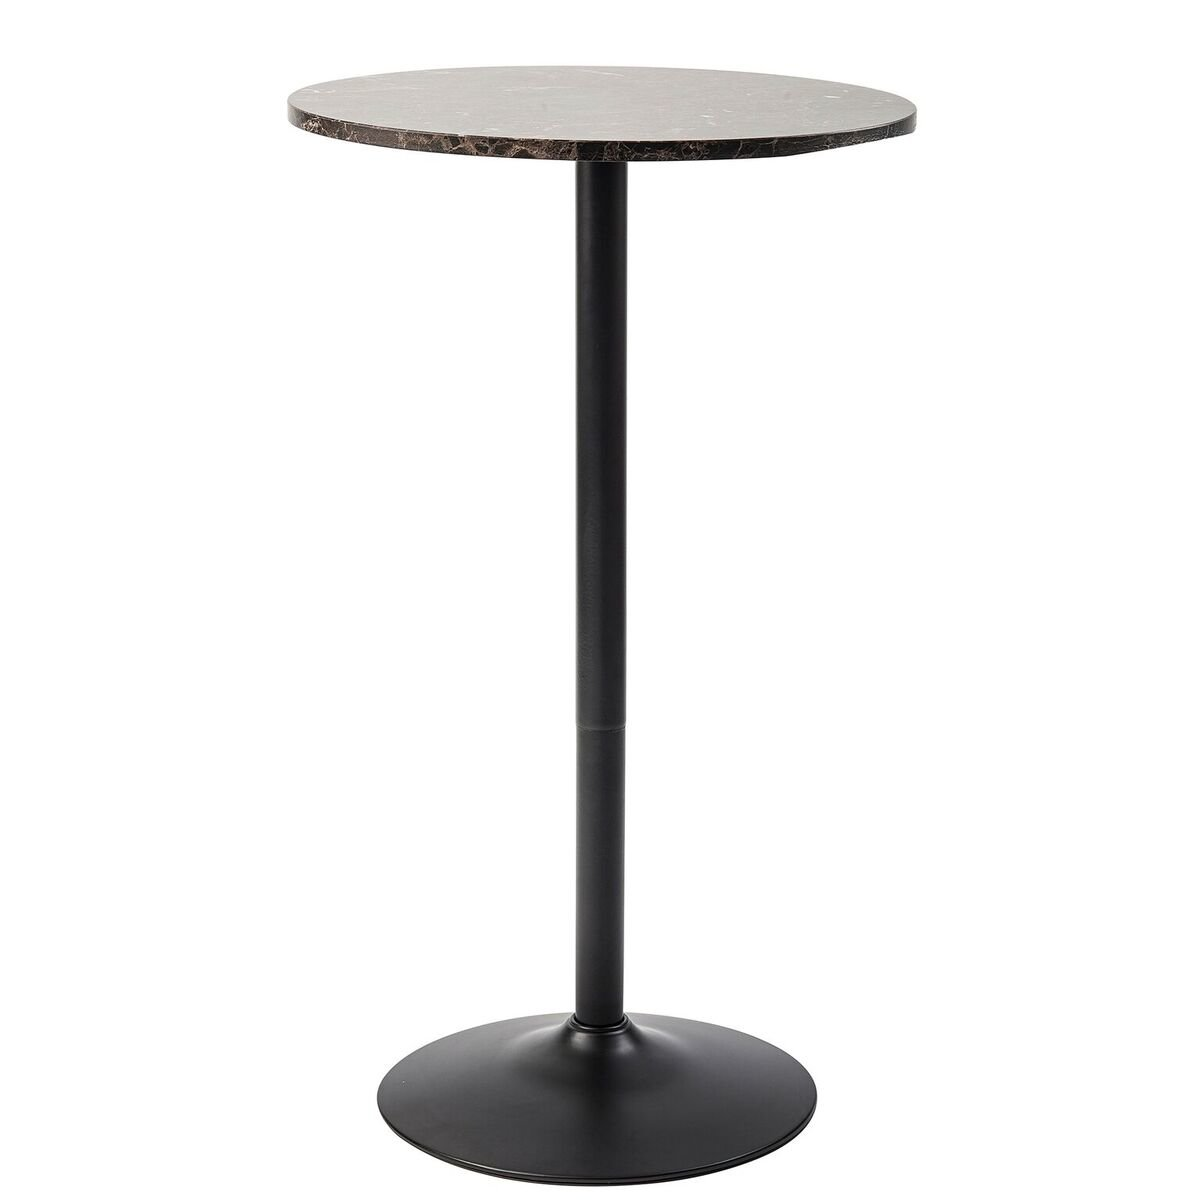 coors light pub table wittman kade accent white console with drawers end tables under queen size cymbal boom stand furniture living wood patio top side west elm floor cushion tall